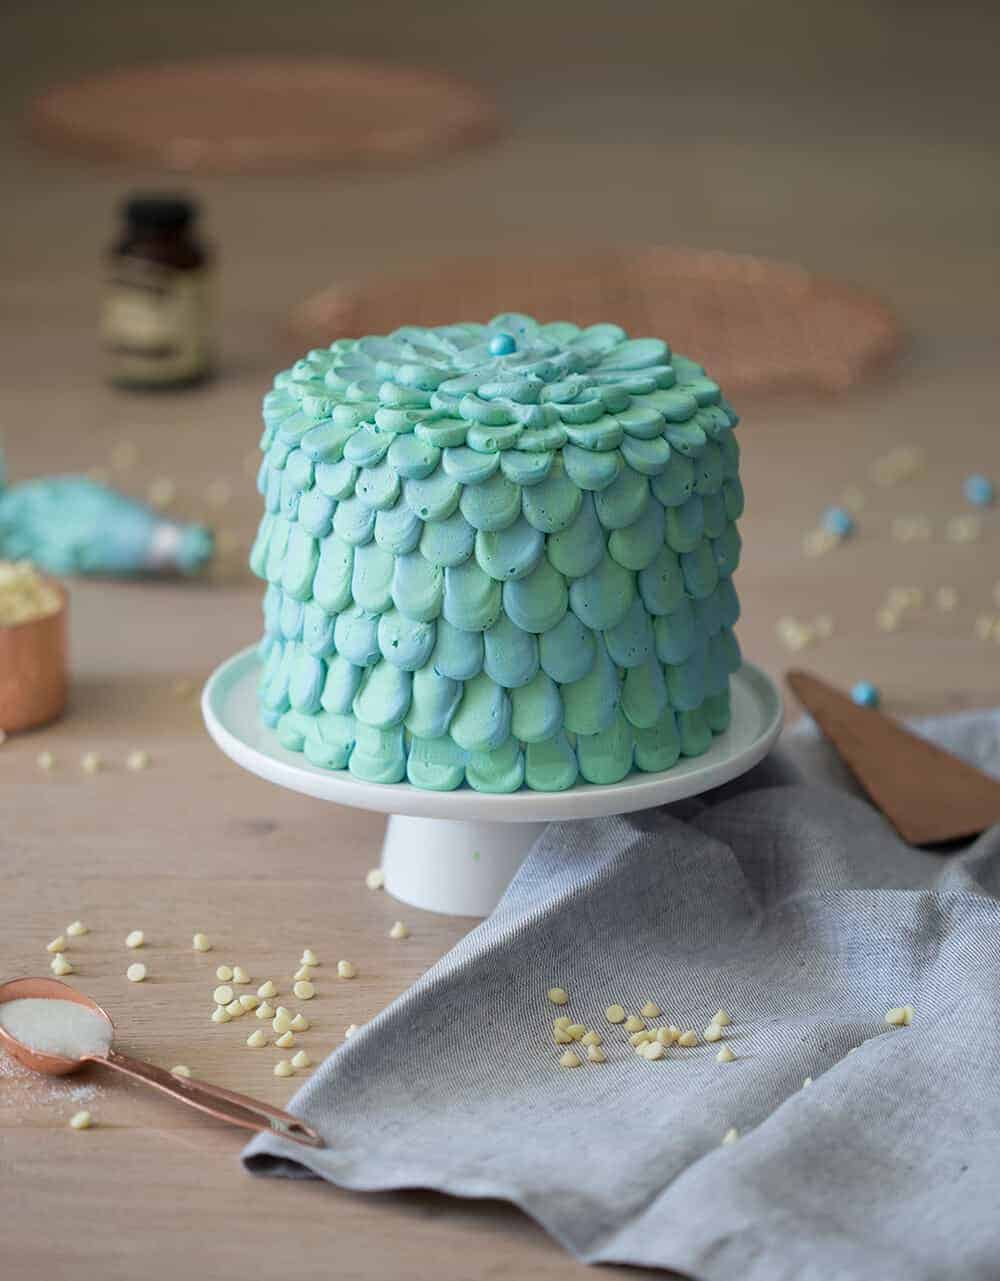 a photo of a mermaid cake on a cake stand.